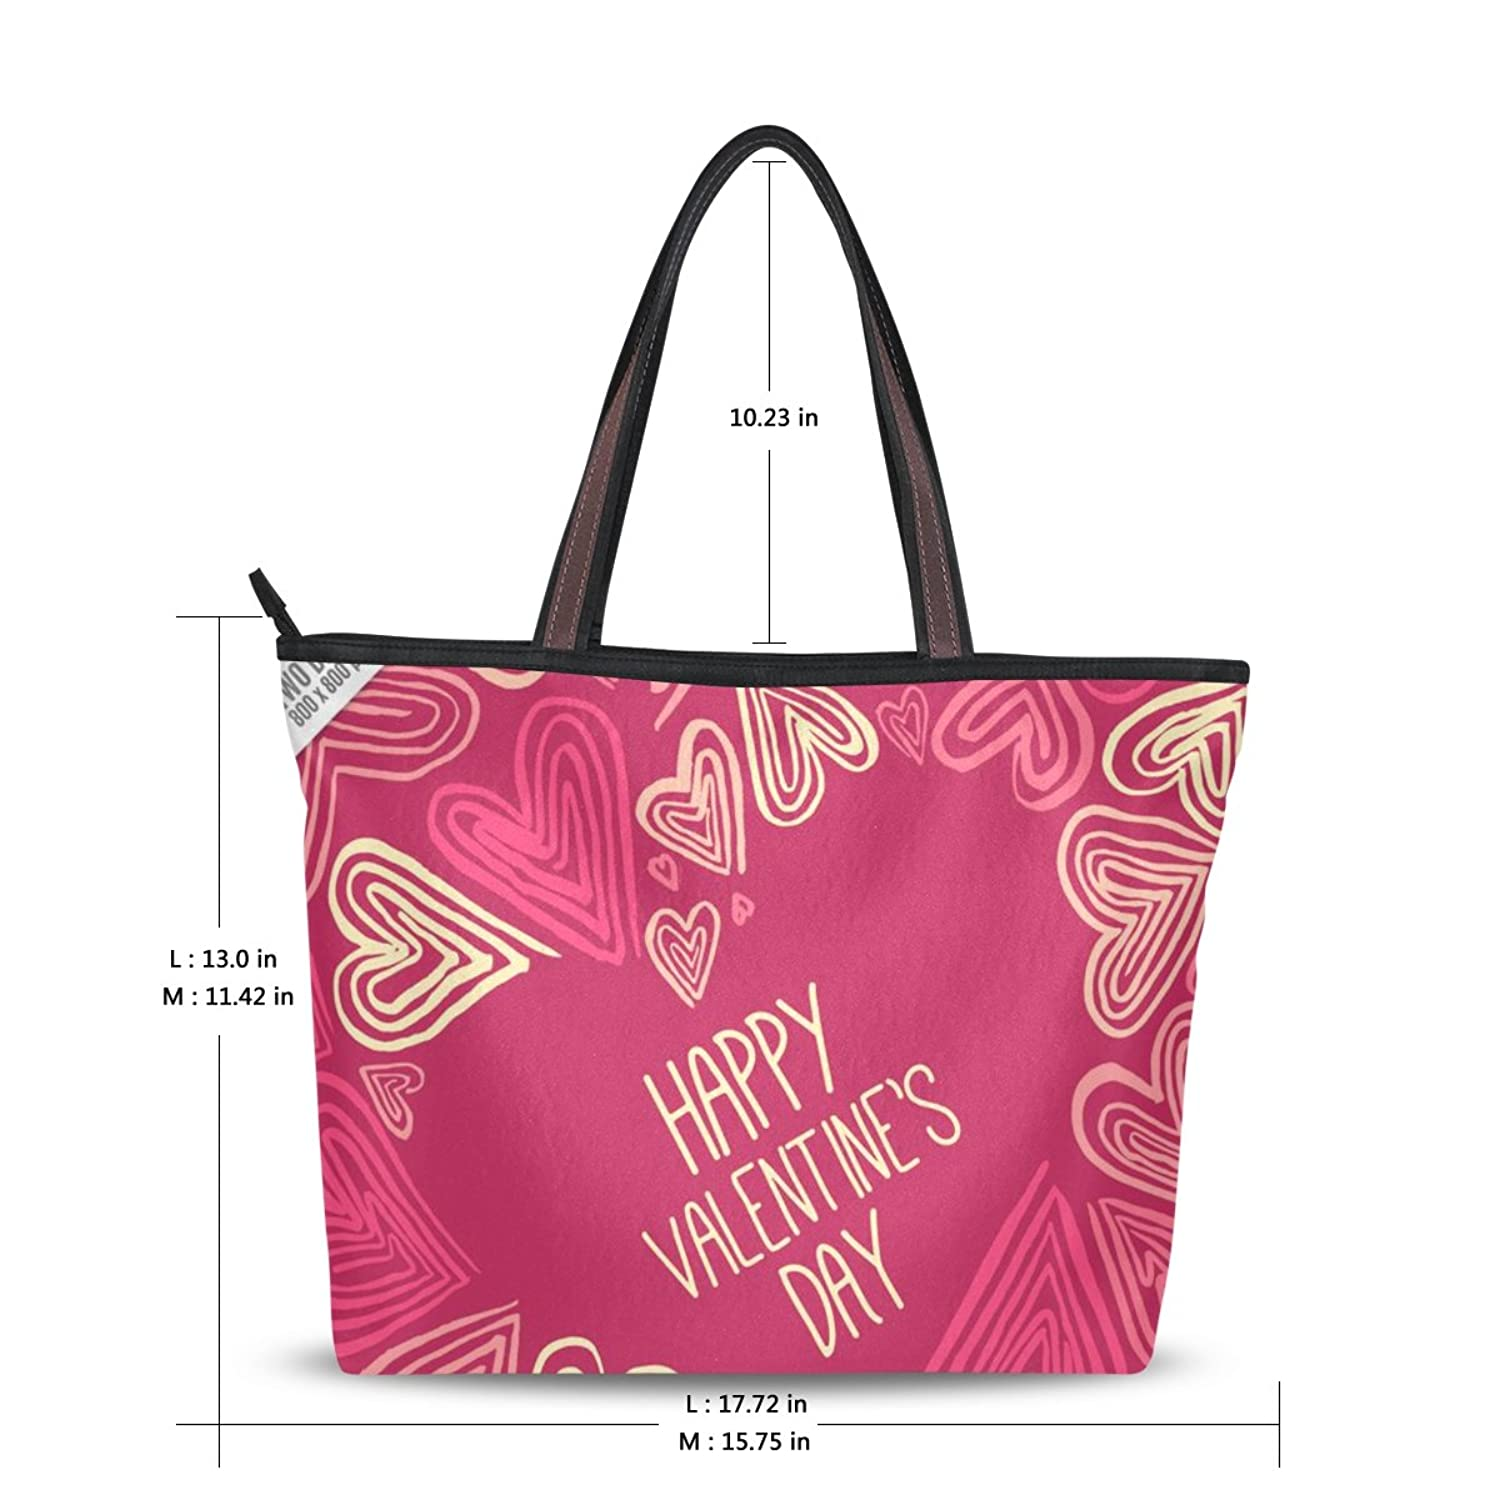 LEEZONE Casual Shoulder Handbag with Happy Valentine's Day Printing for Femal(Women,Lady,Girl)